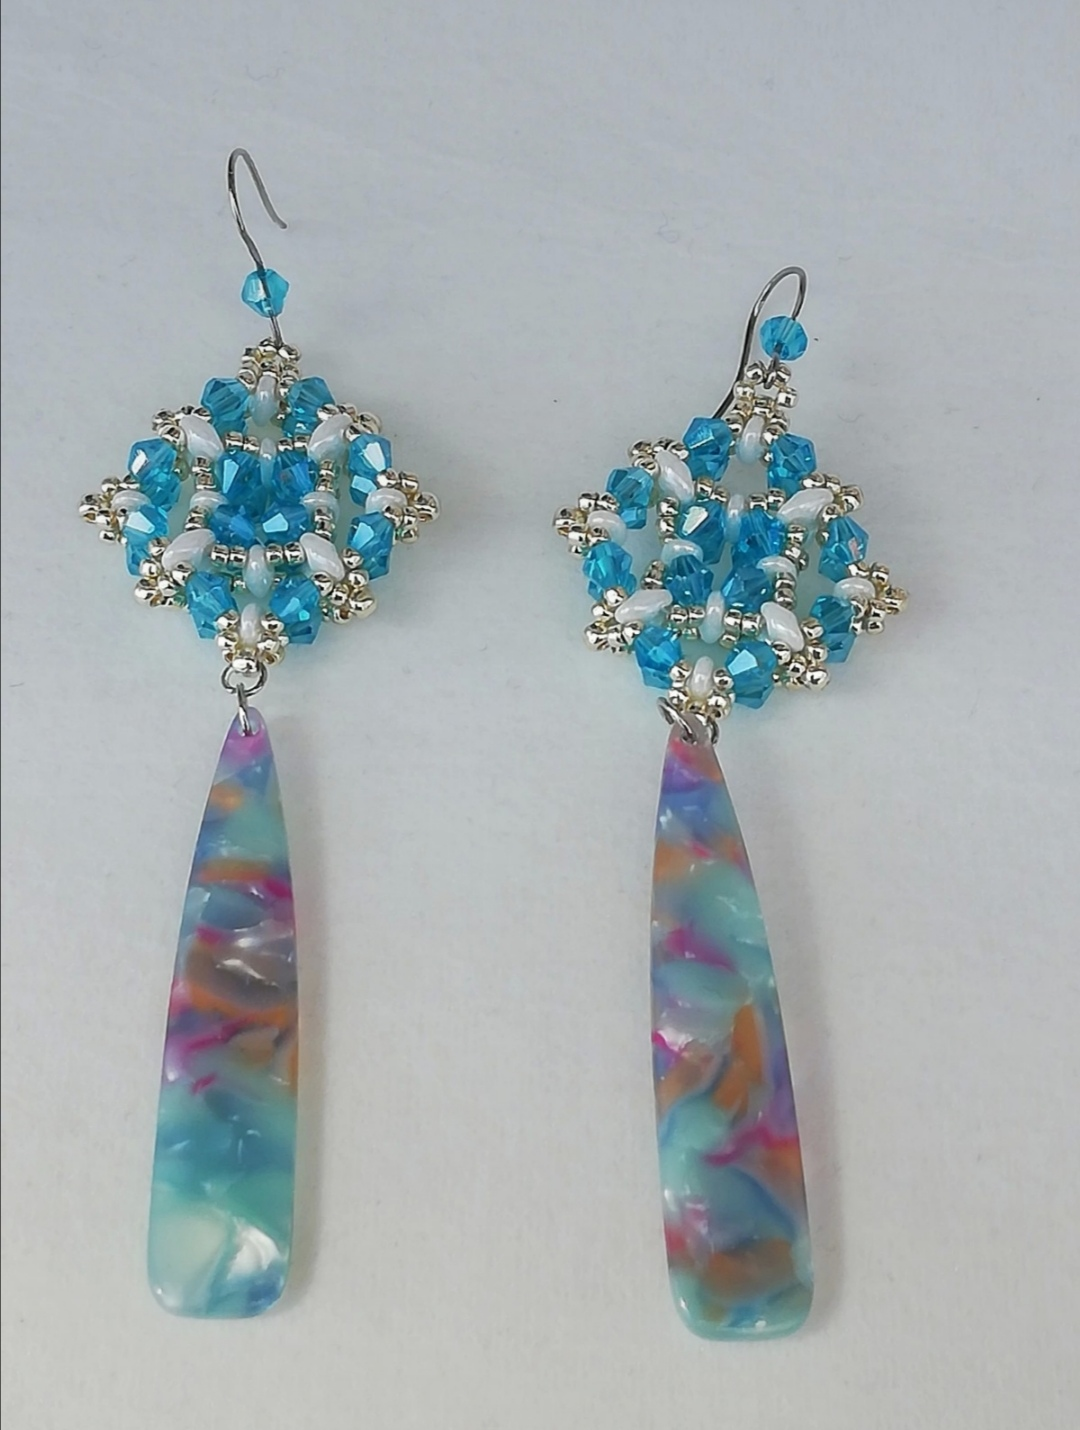 Boucles d'oreilles artisanales | Collection Made in Italy